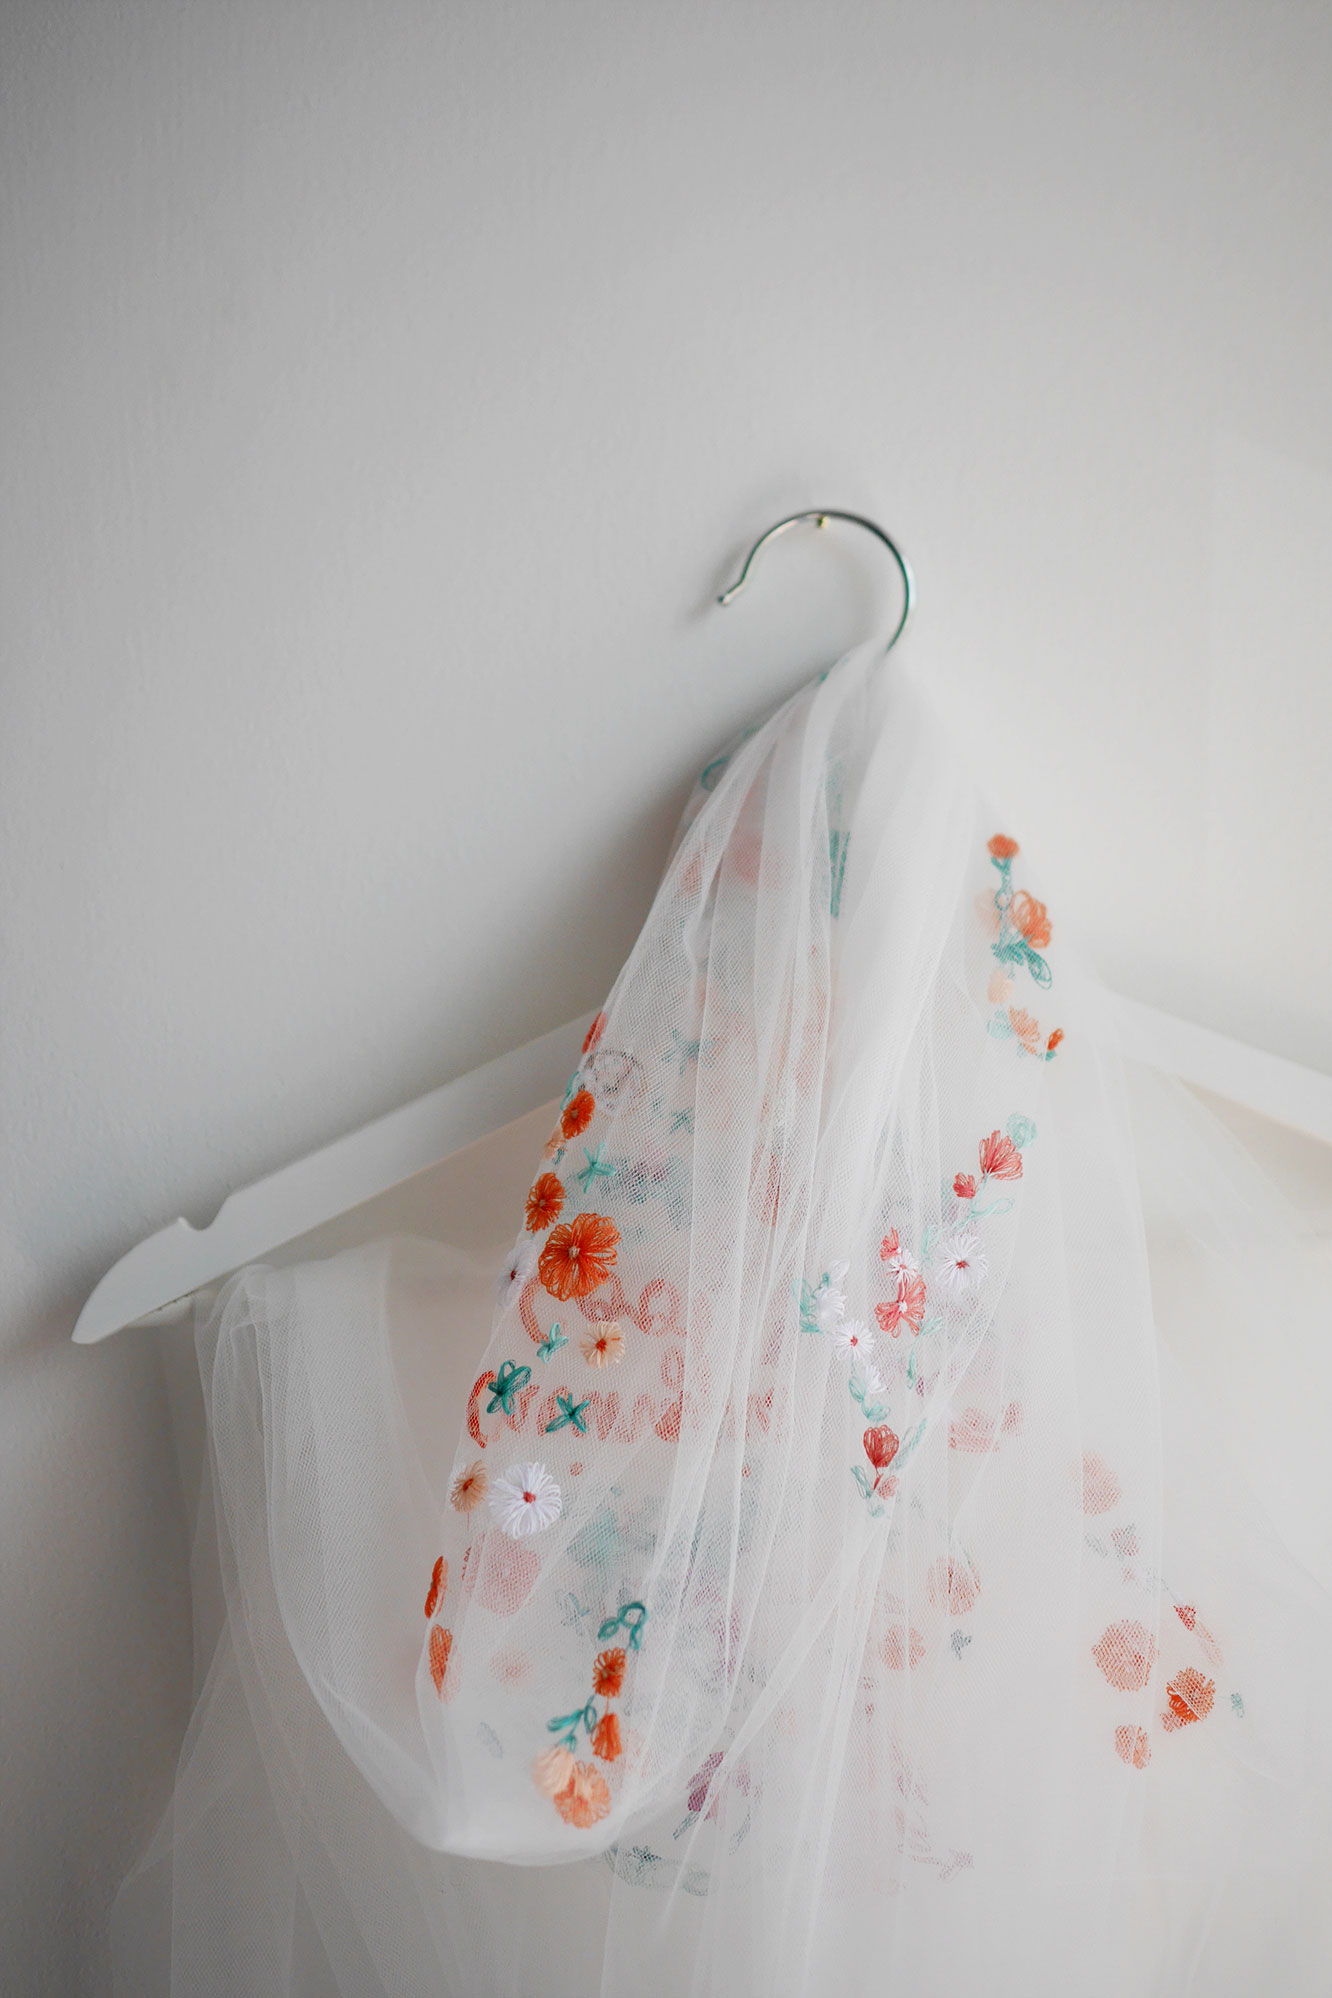 Veils, Dresses, Separates, Accessories - Bespoke Embroidery